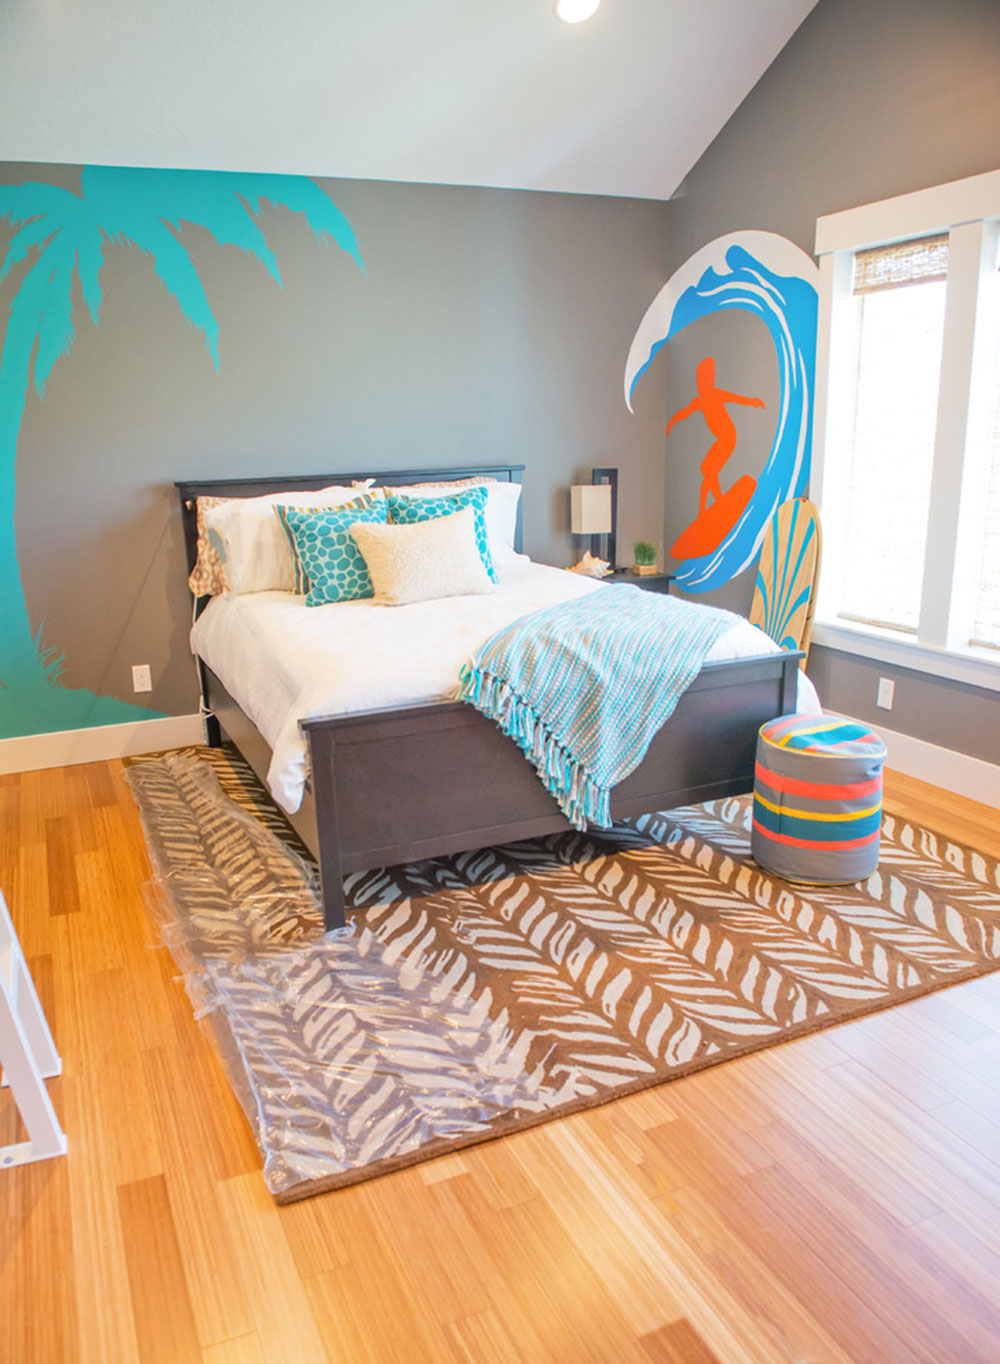 Never-Miss-Summer-With-These-Tropical-Bedroom-Design-Ideen5 Never Miss Summer with these Tropical Bedroom Design Ideas